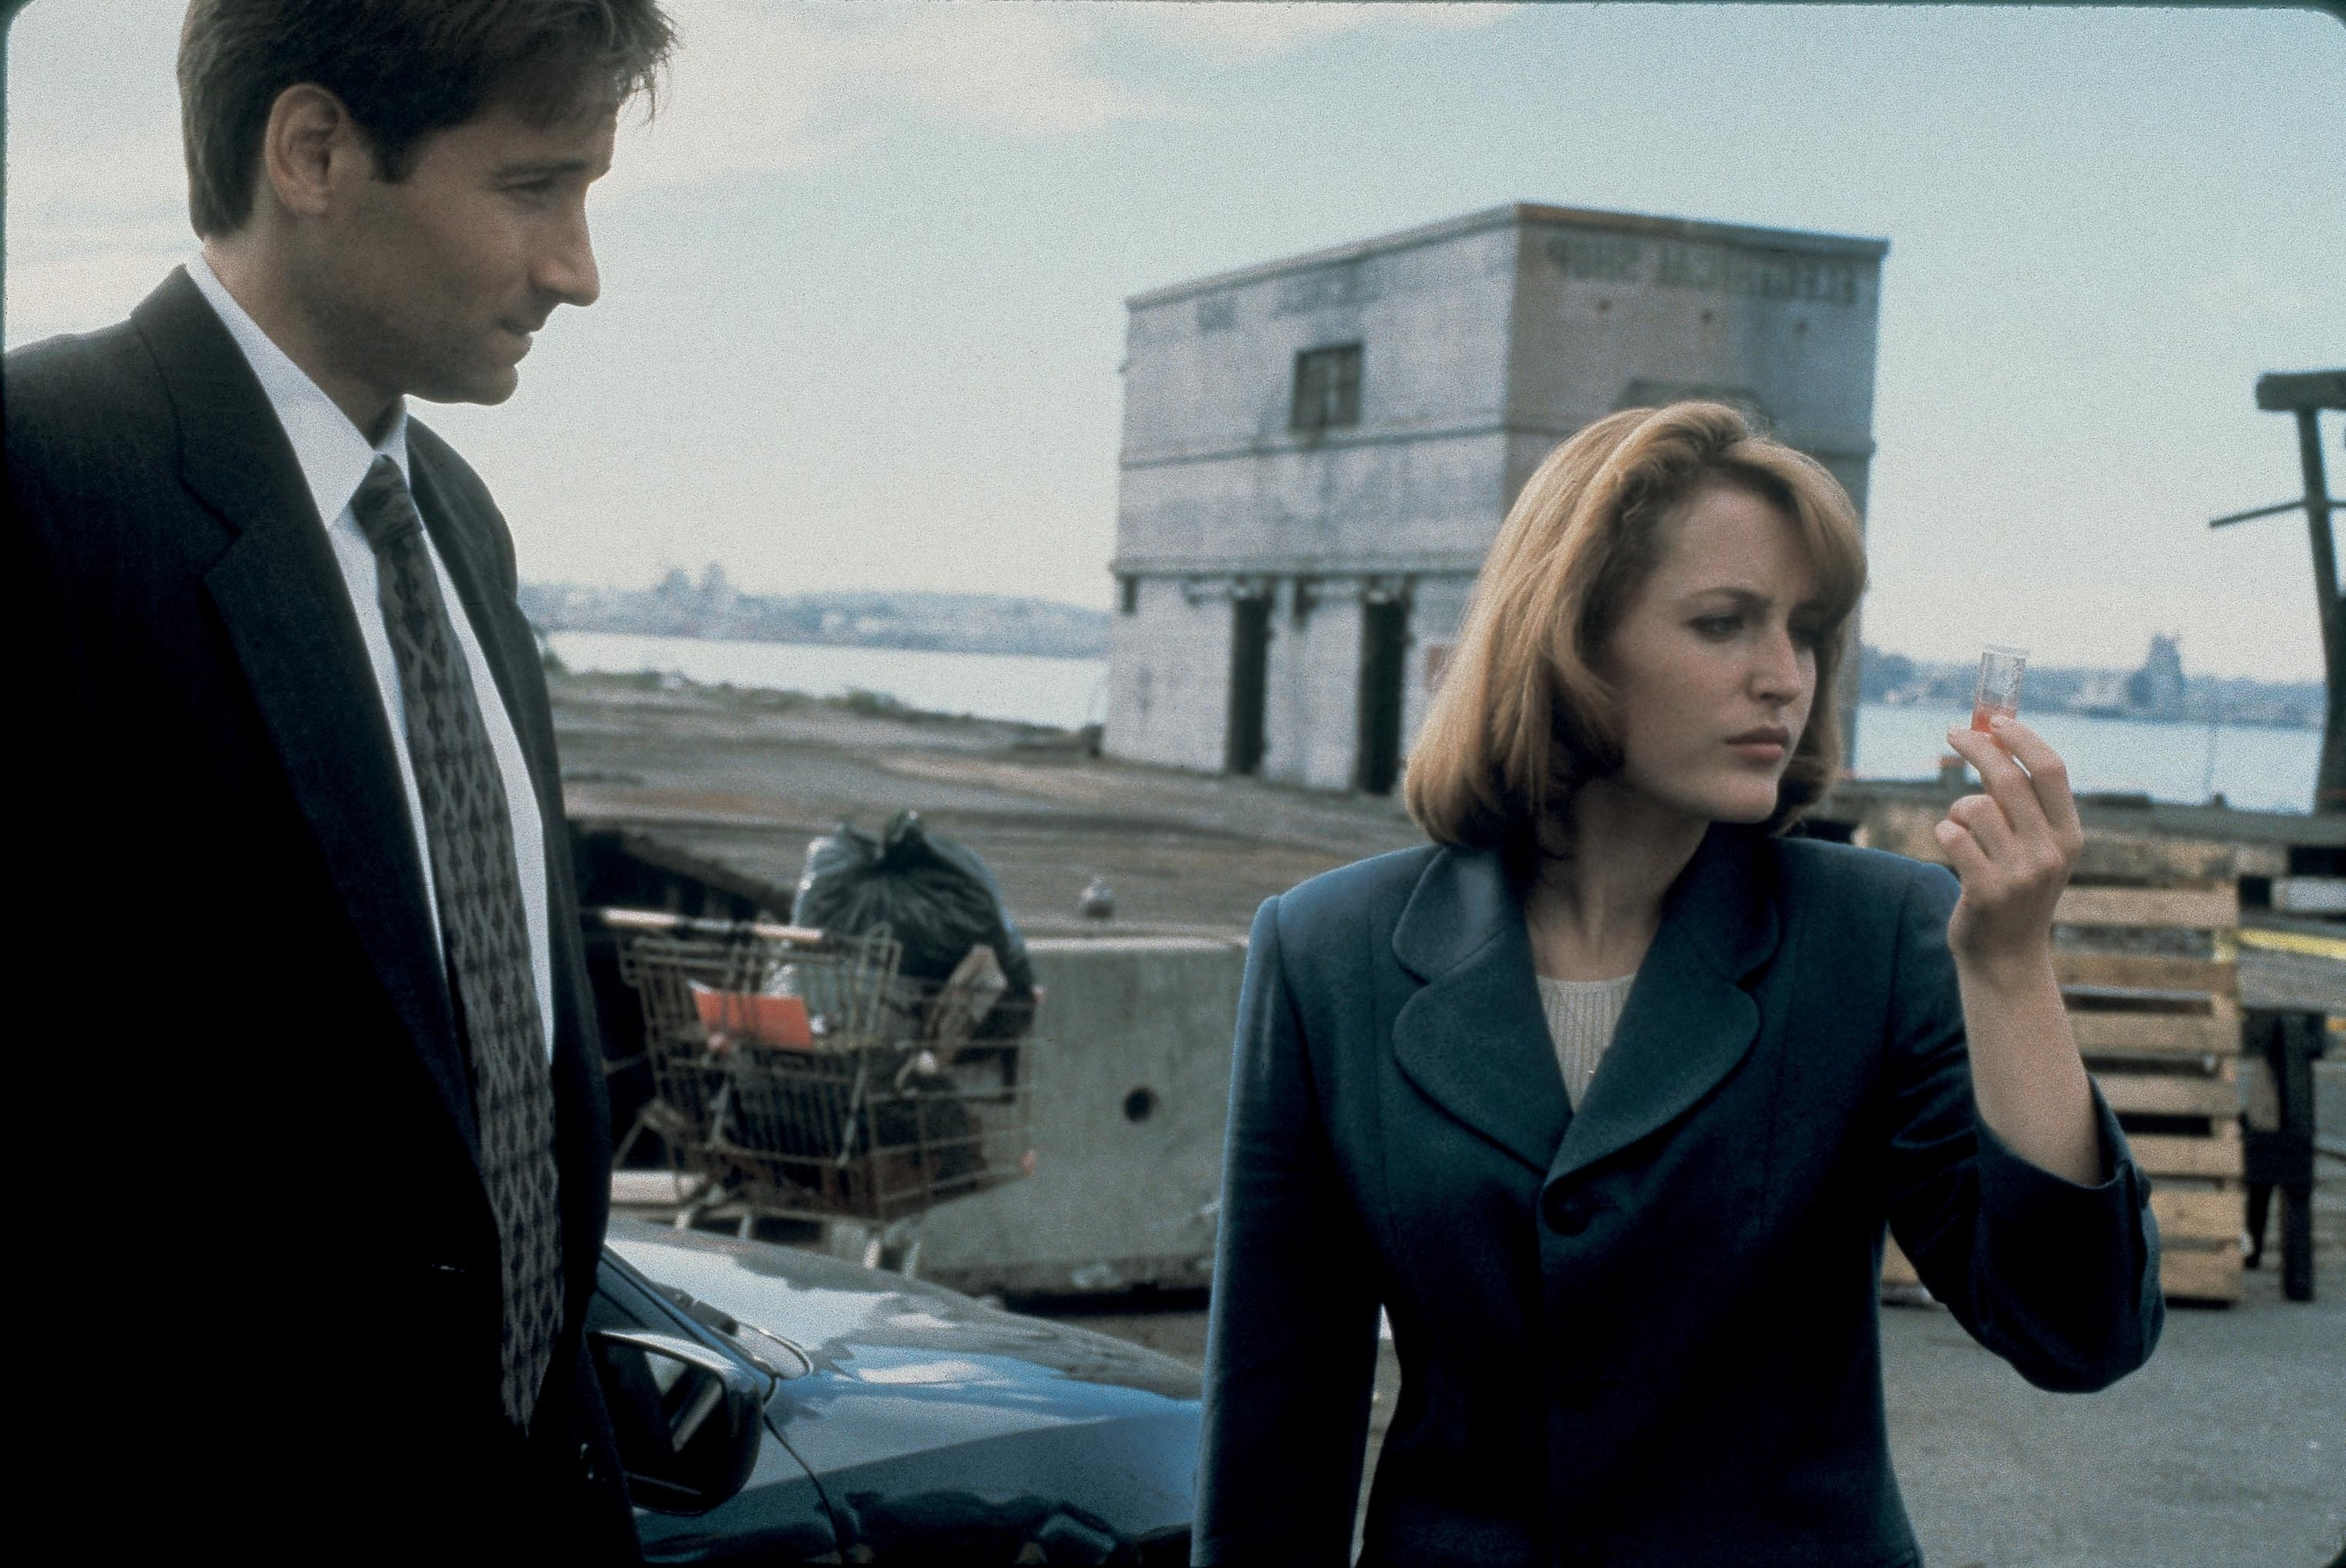 THE X-FILES: Agents Mulder (David Duchovny, L) and Scully (Gillian Anderson, R) hunt for a killer who uses the internet to at